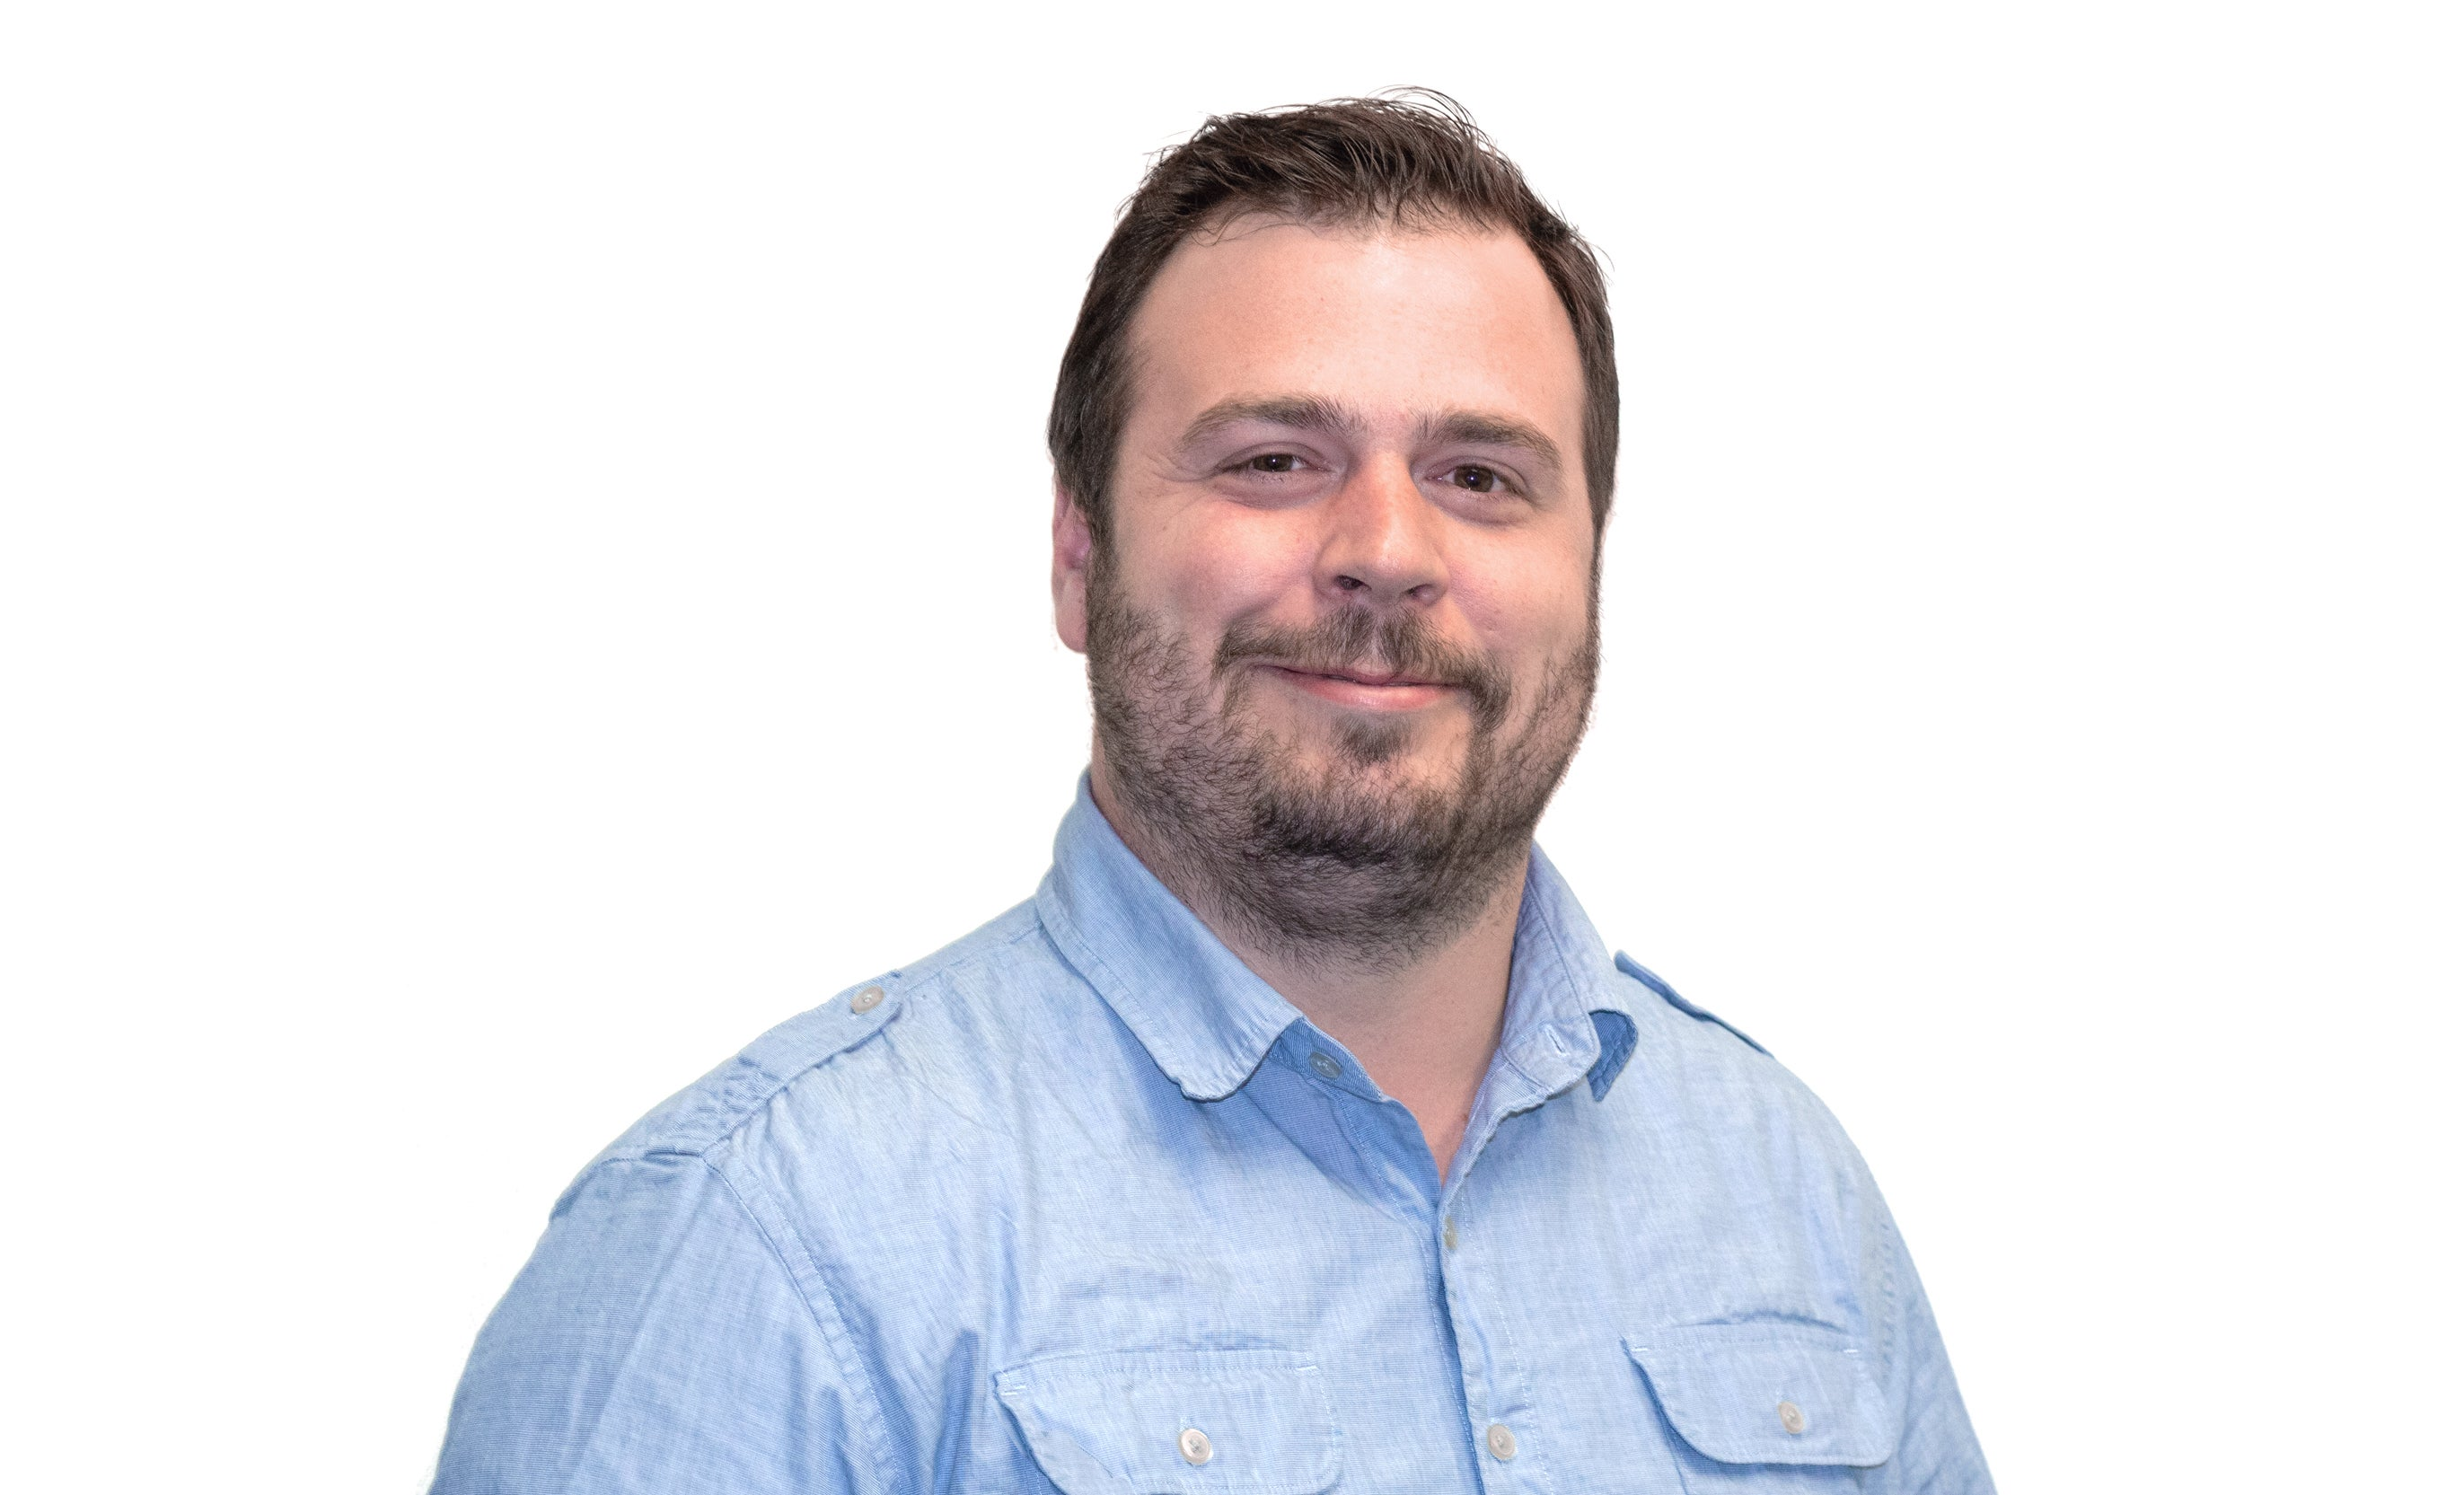 Aaron Brosey Re-Certifies as Kentico Xperience Developer